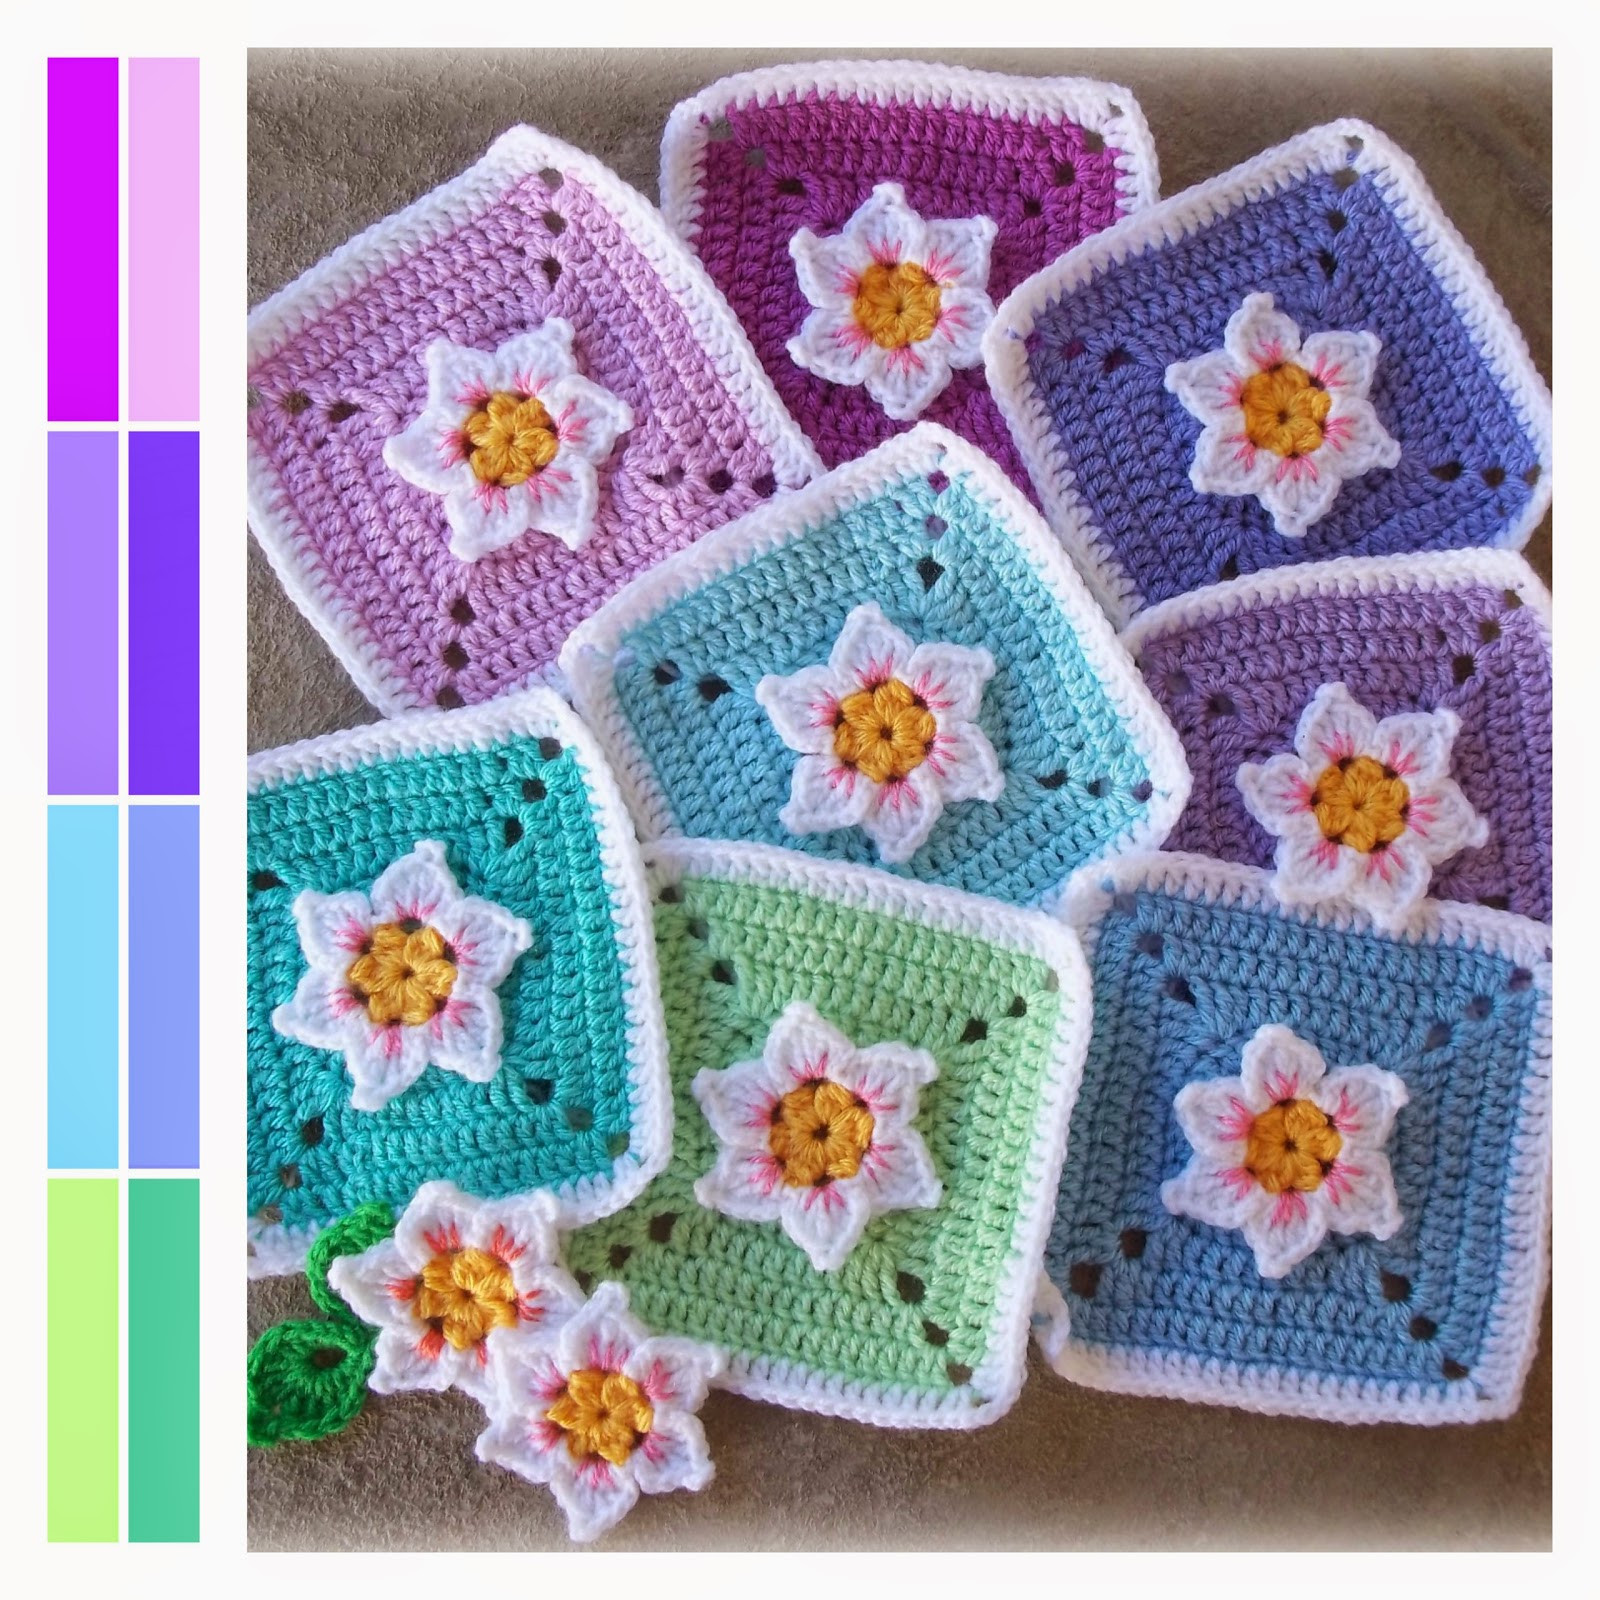 Crochet Square Patterns Beautiful Zooty Owl S Crafty Blog Not Quite A Daffodil Square Pattern Of Marvelous 43 Photos Crochet Square Patterns